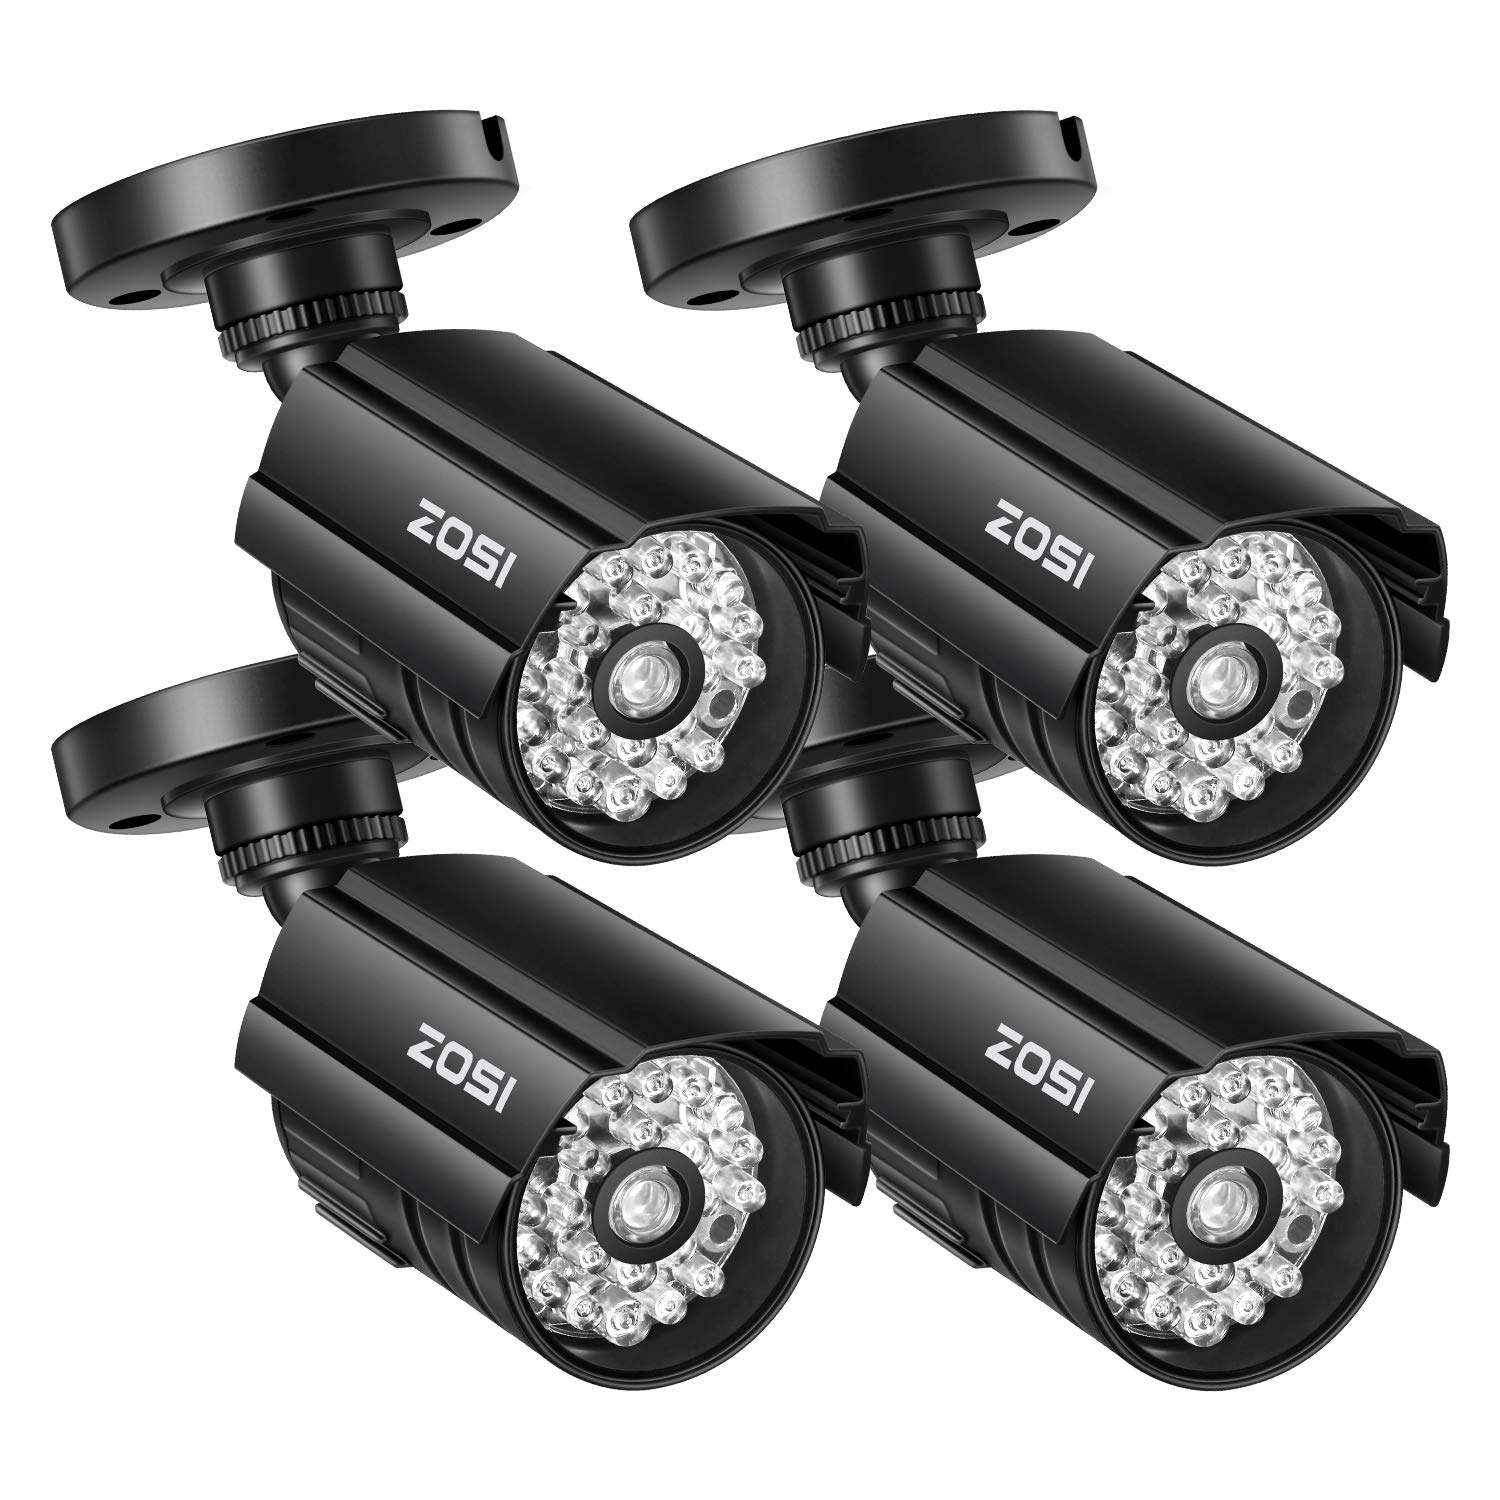 ZOSI 4 Pack Fake Security Camera Bullet with Red Light, Dummy Surveillance Camera Outdoor by ZOSI